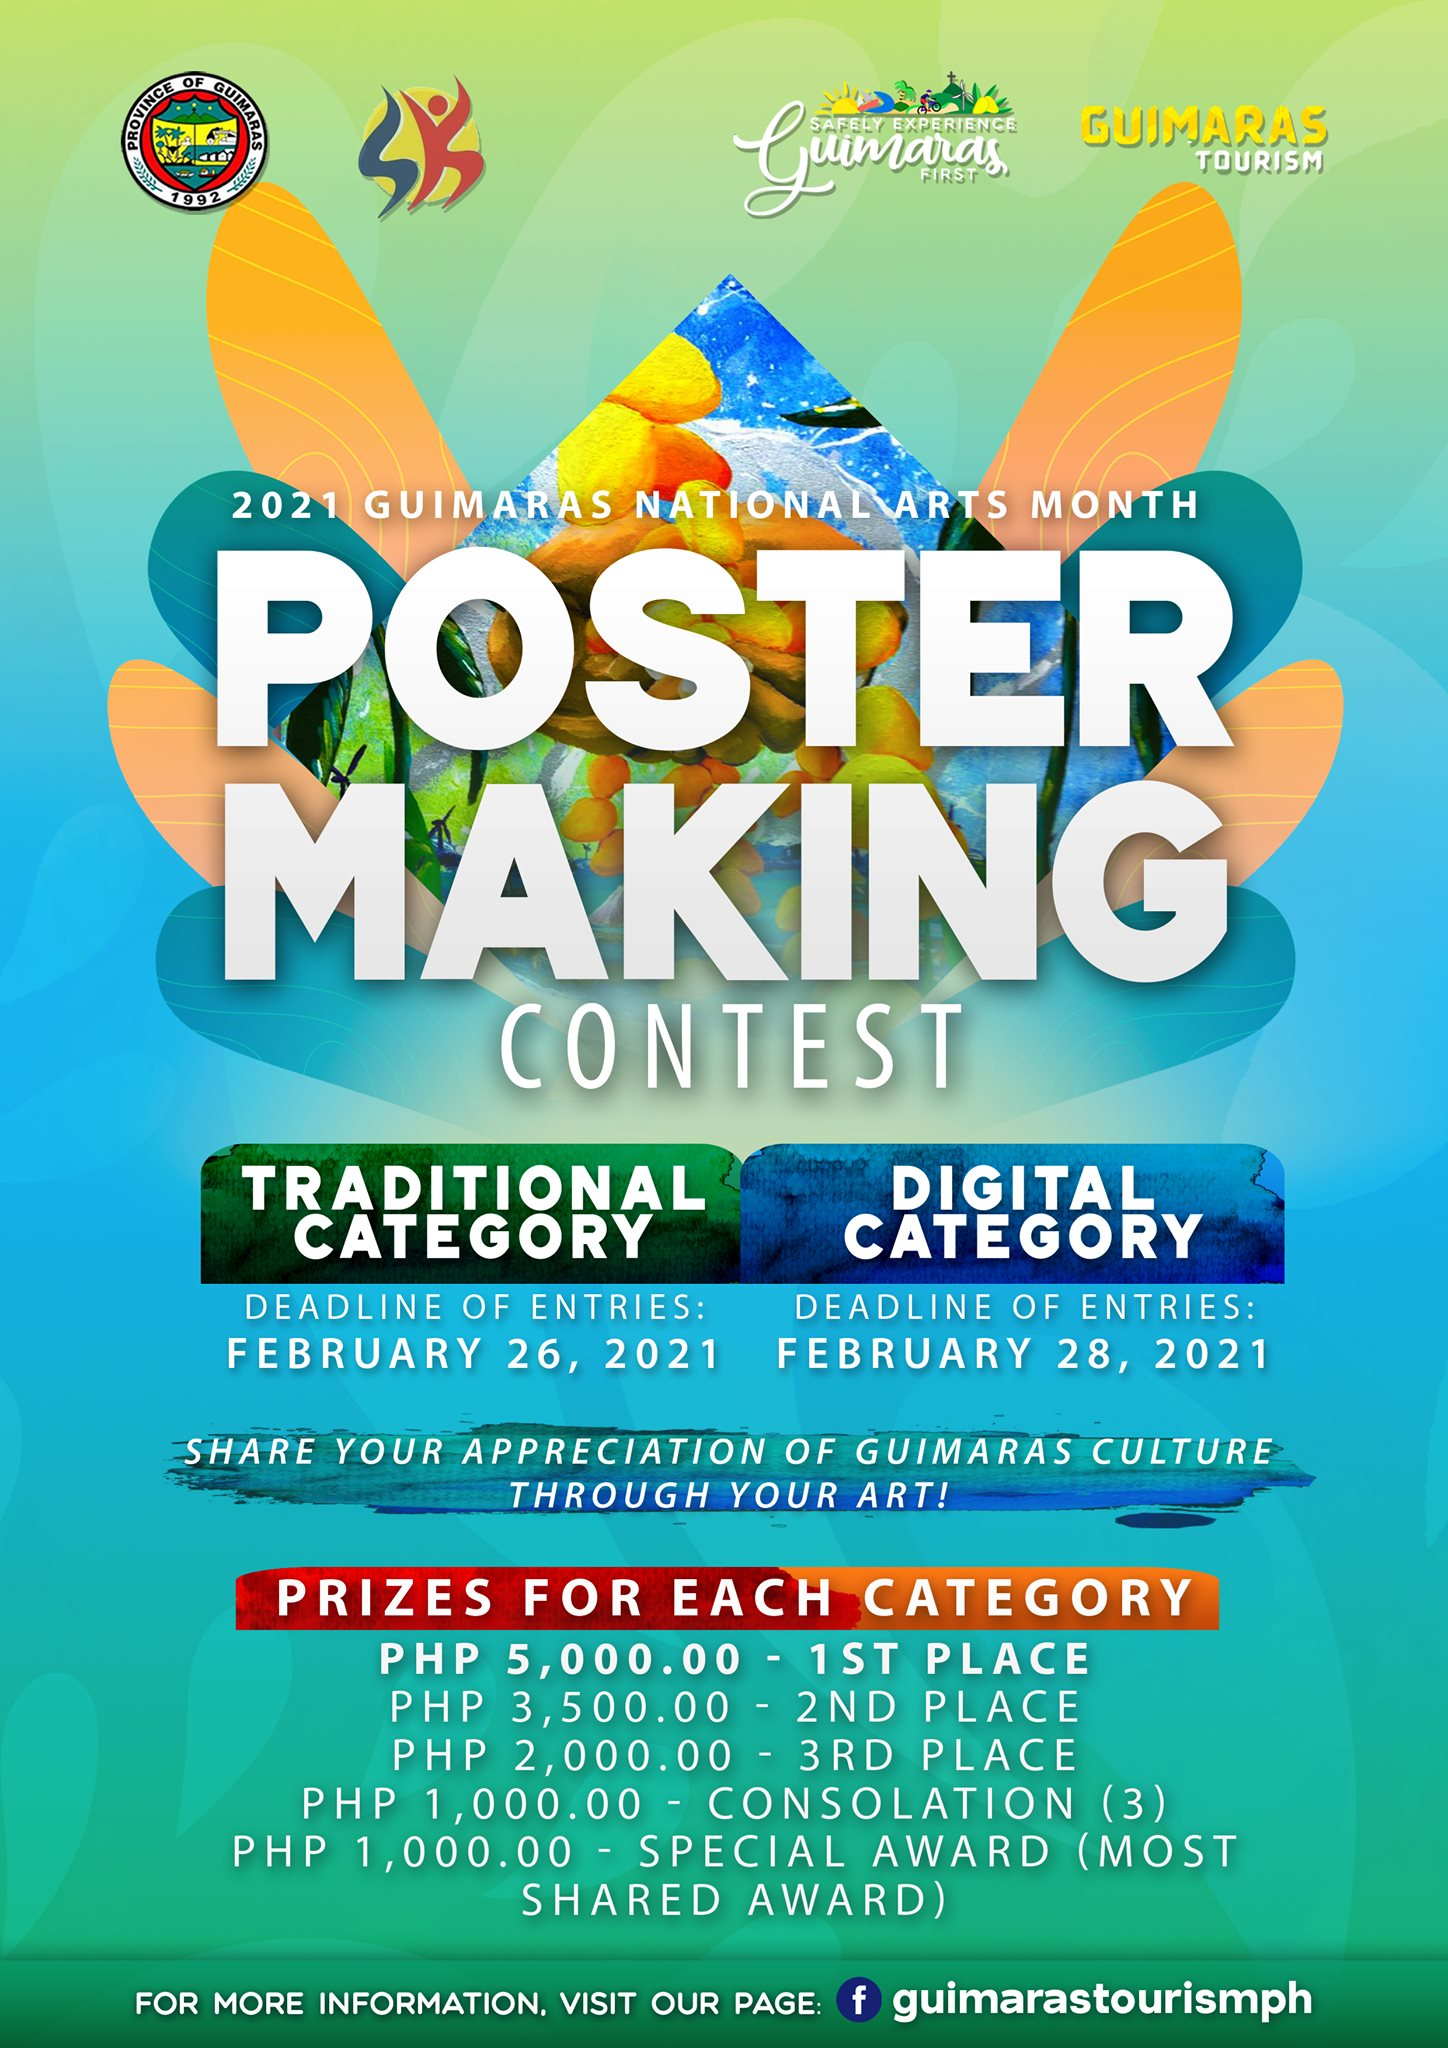 National Arts Month Poster Making Contest 2021